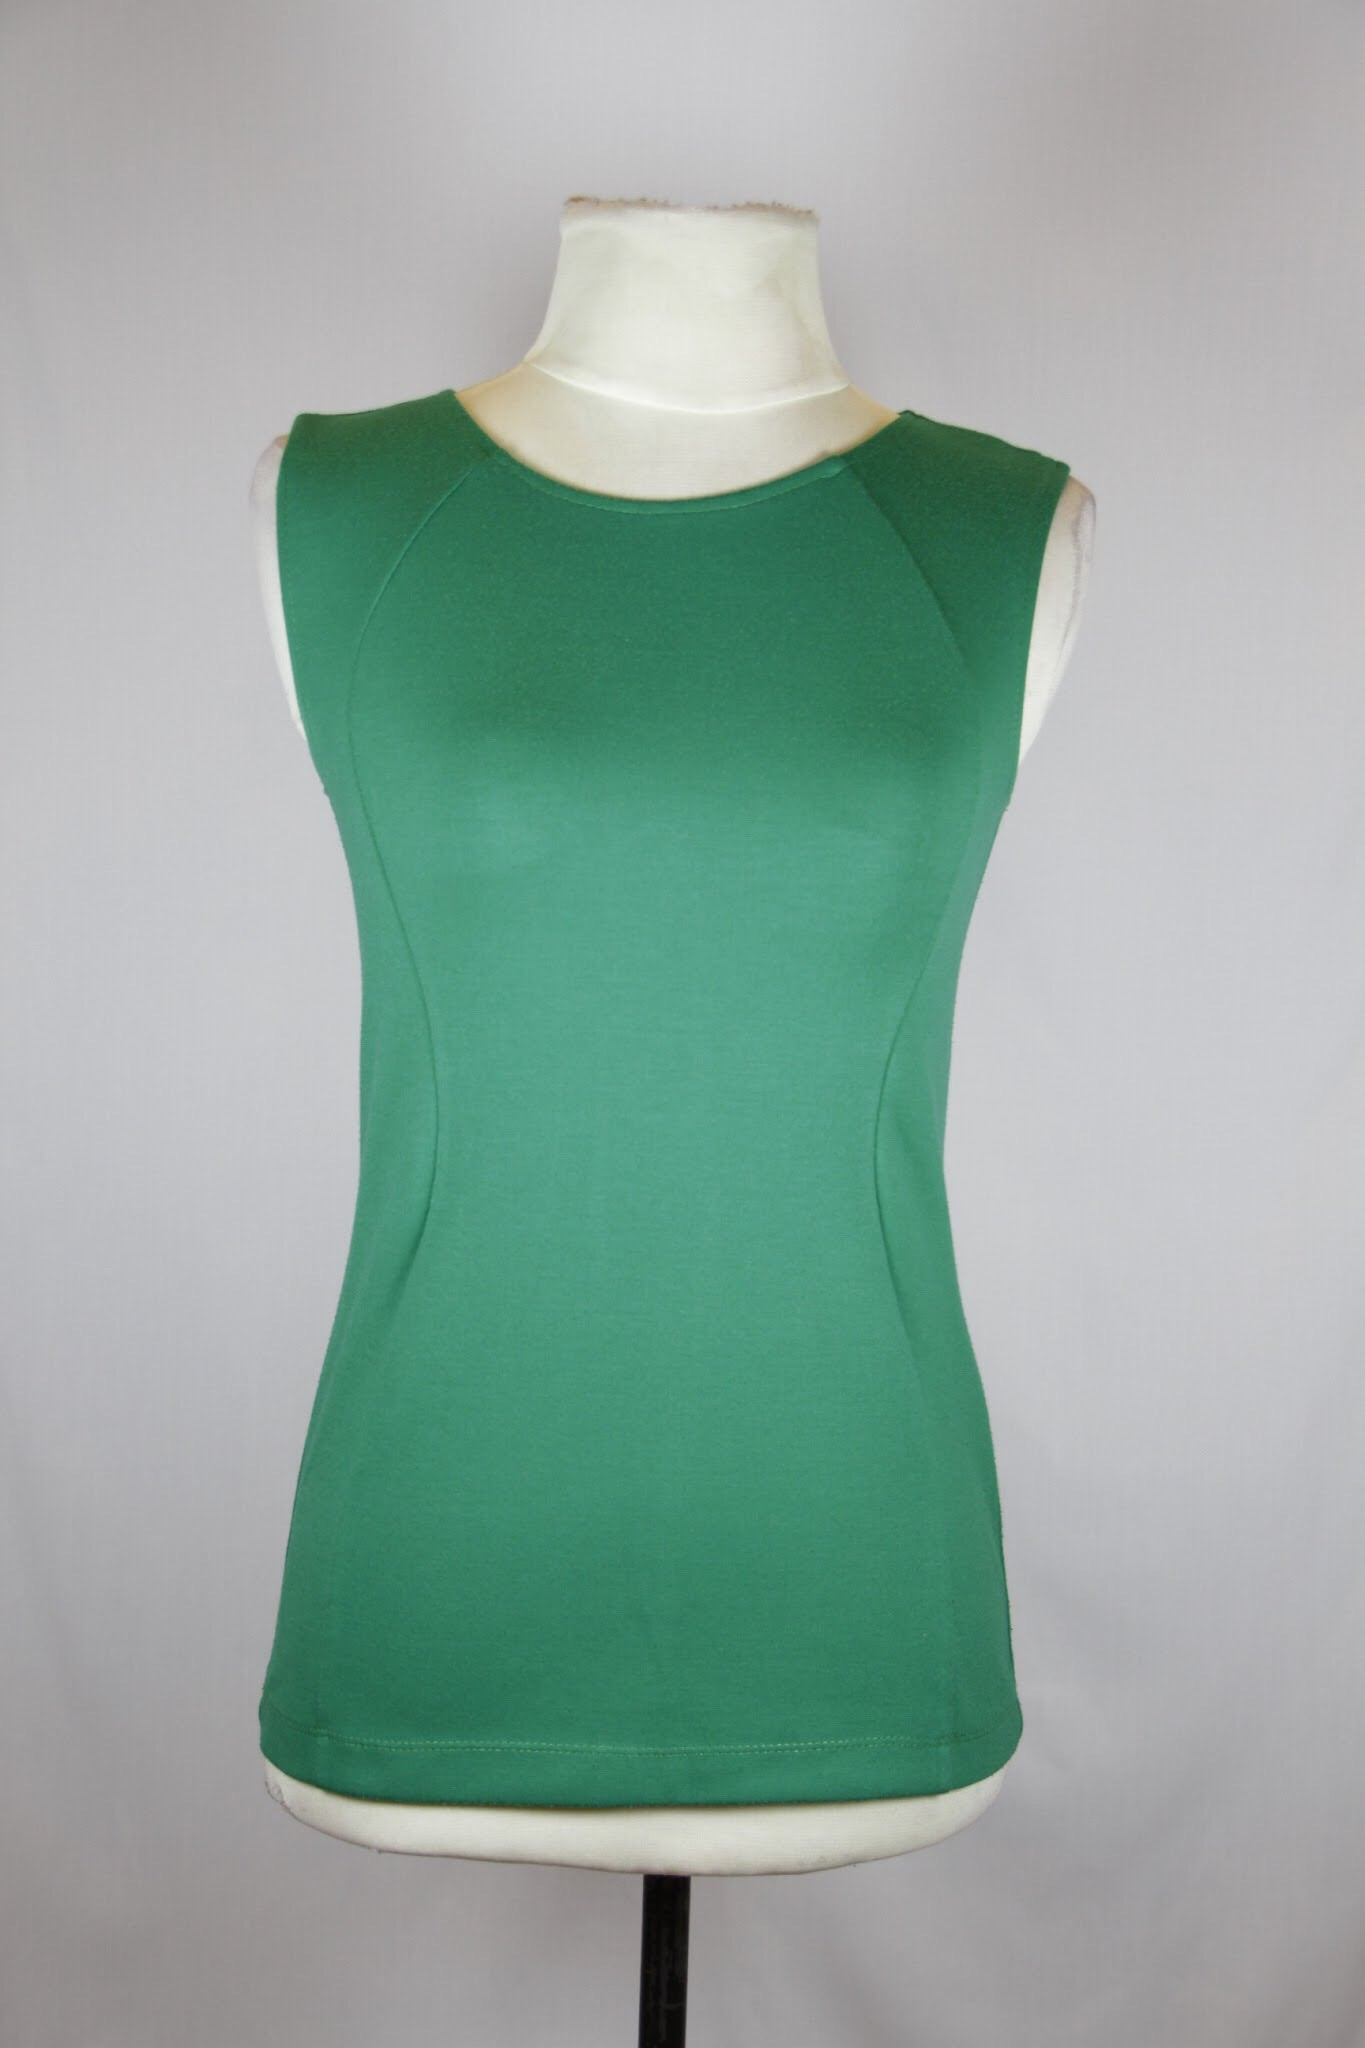 Philosophy Green Sleeveless Blouse